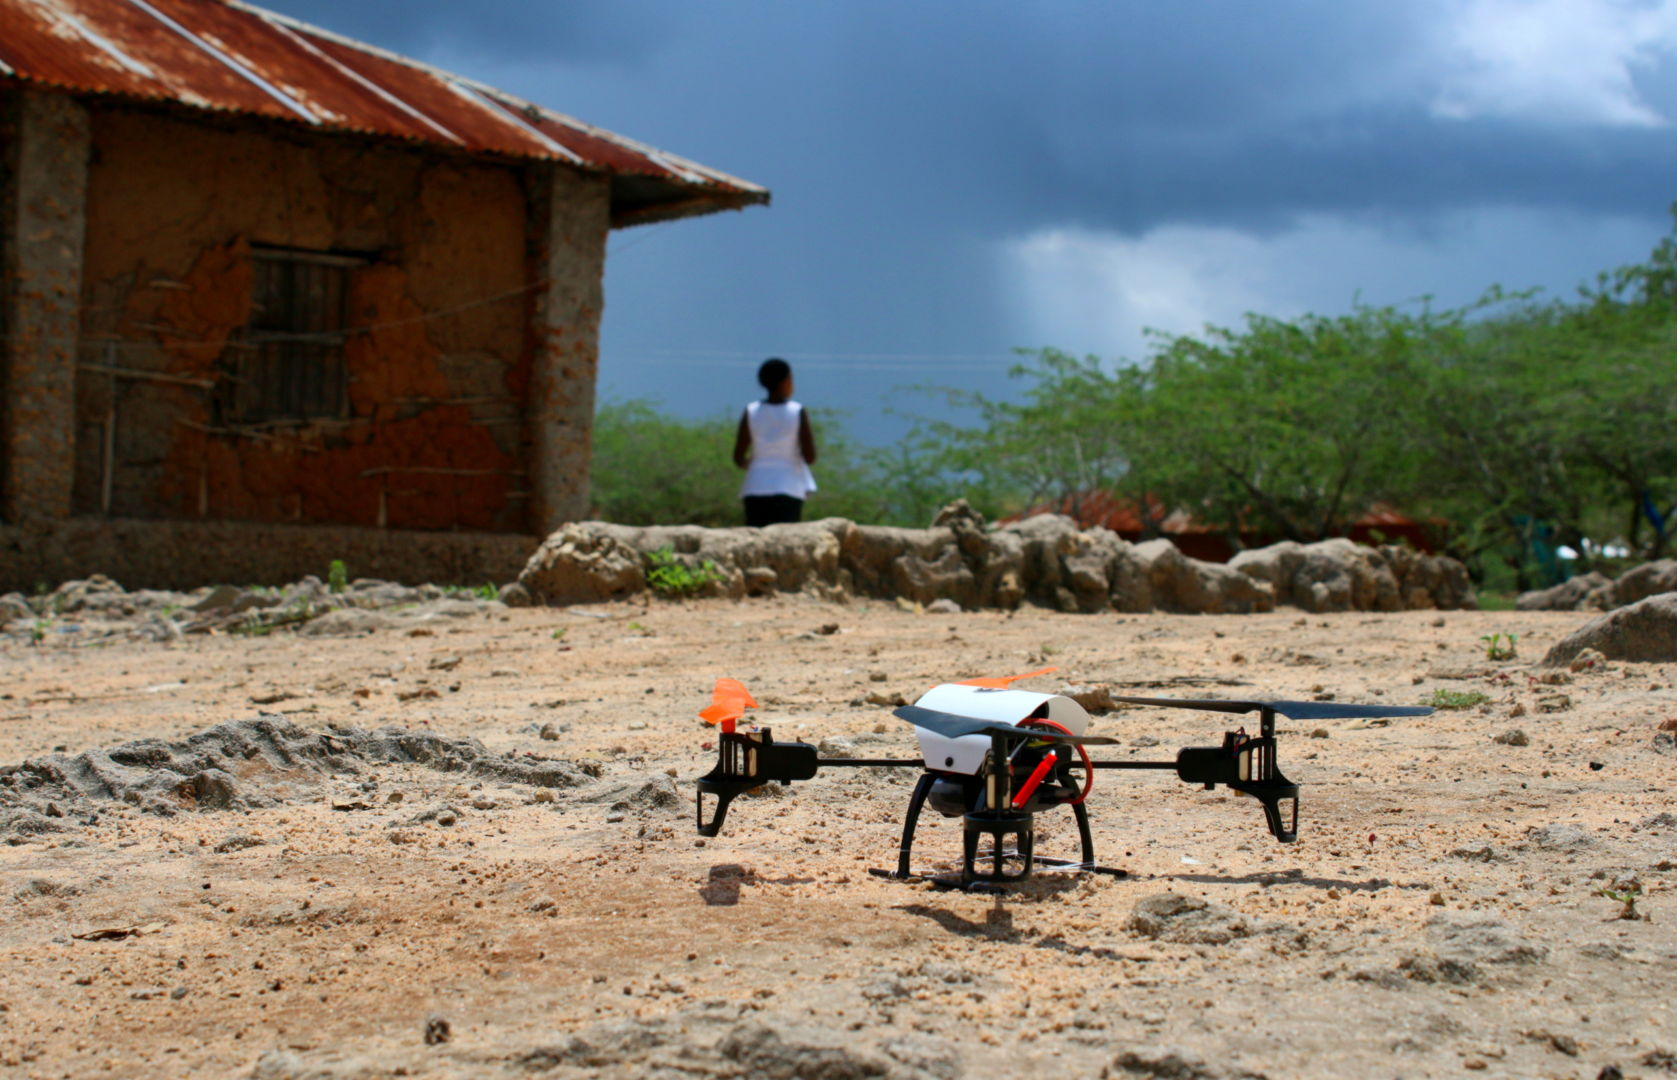 The Attack That Never Was: A firsthand case for expanding Una Hakika and using UAVs